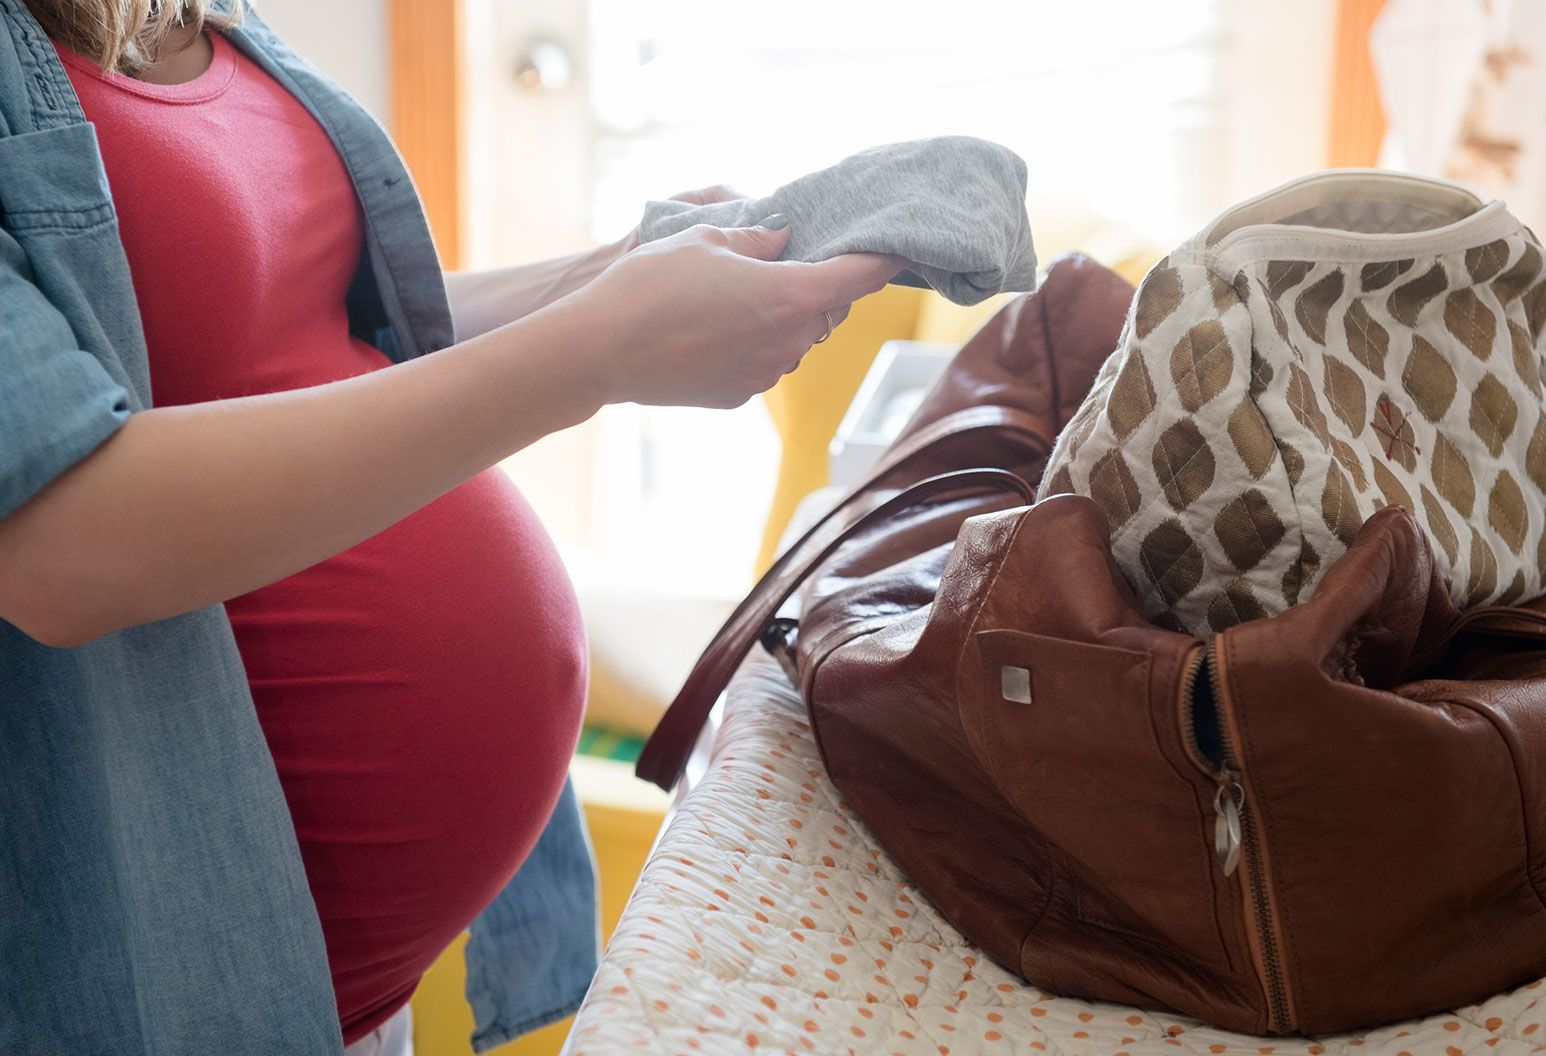 A pregnant woman folds clothes and places them in to a brown leather bag.